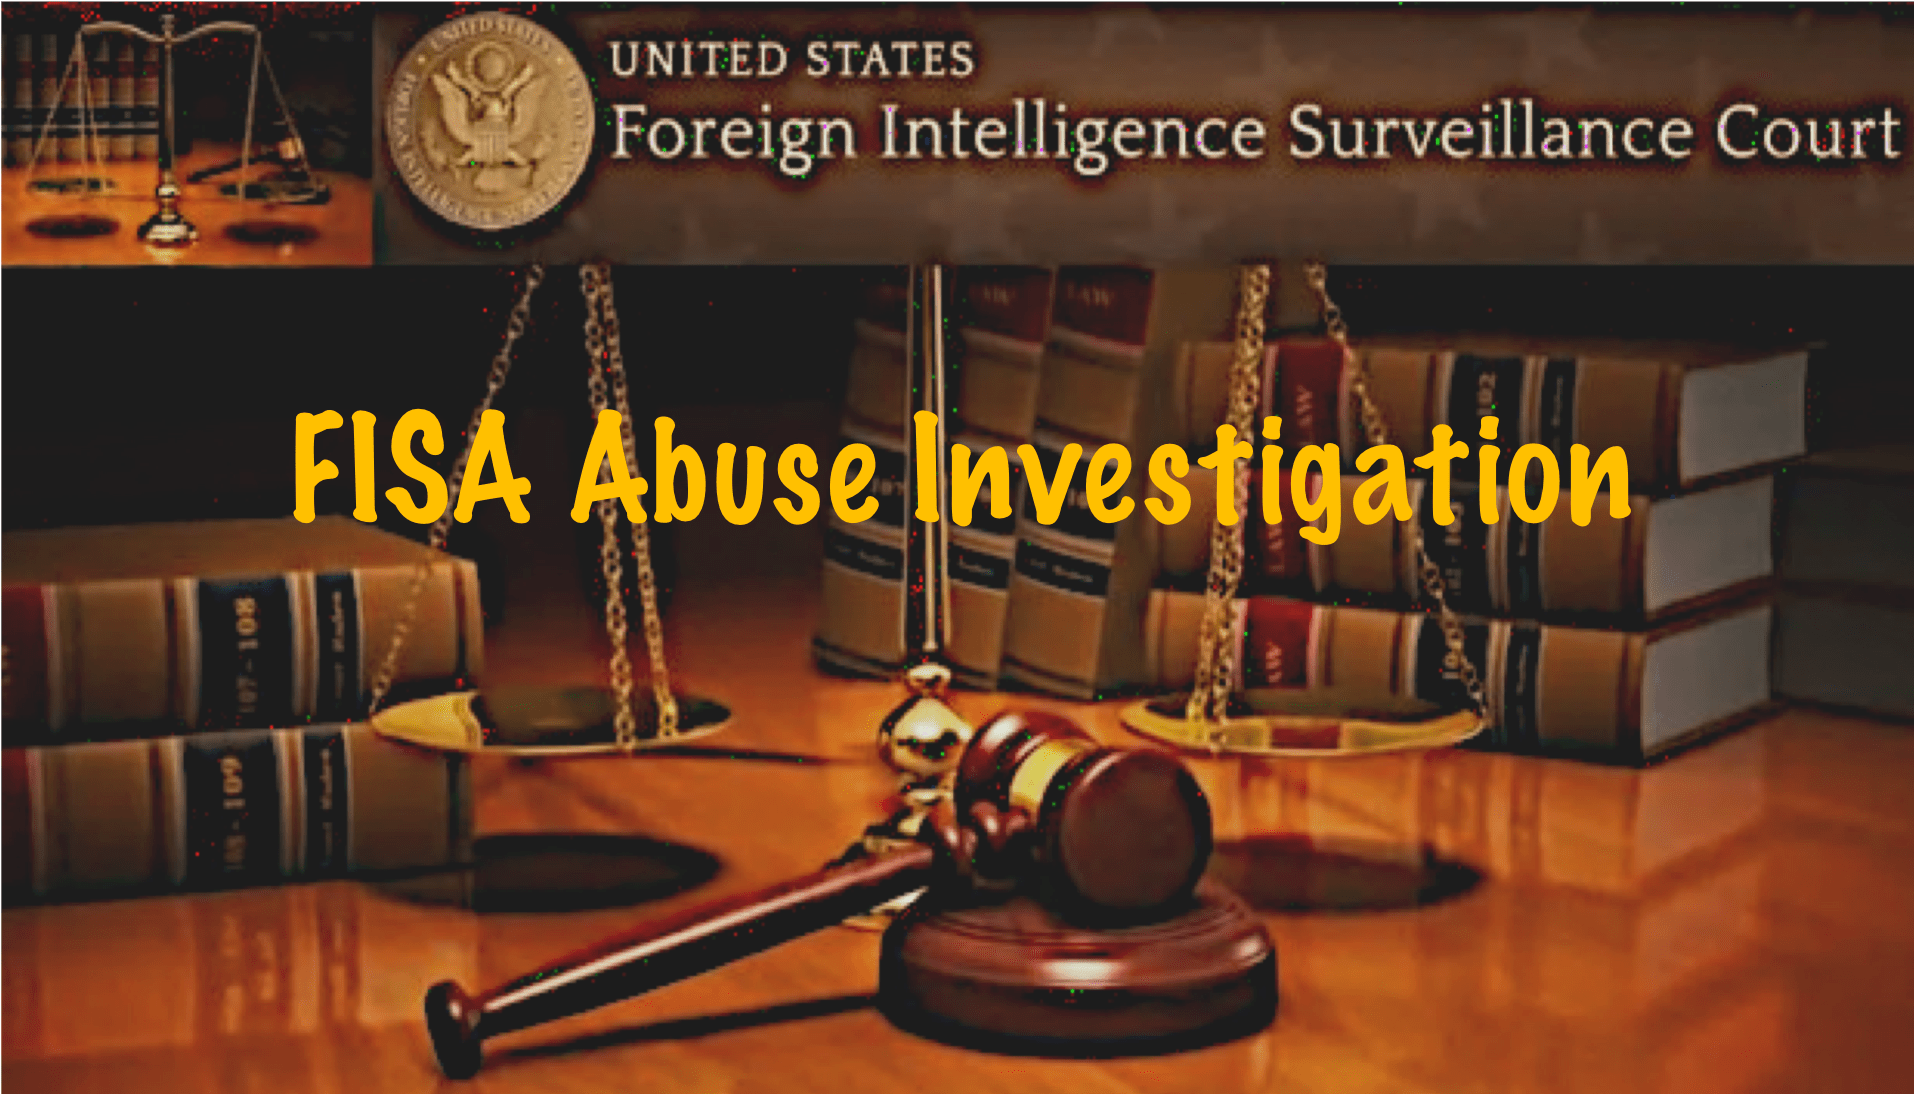 fisa-abuse-investigation-e1603057840411